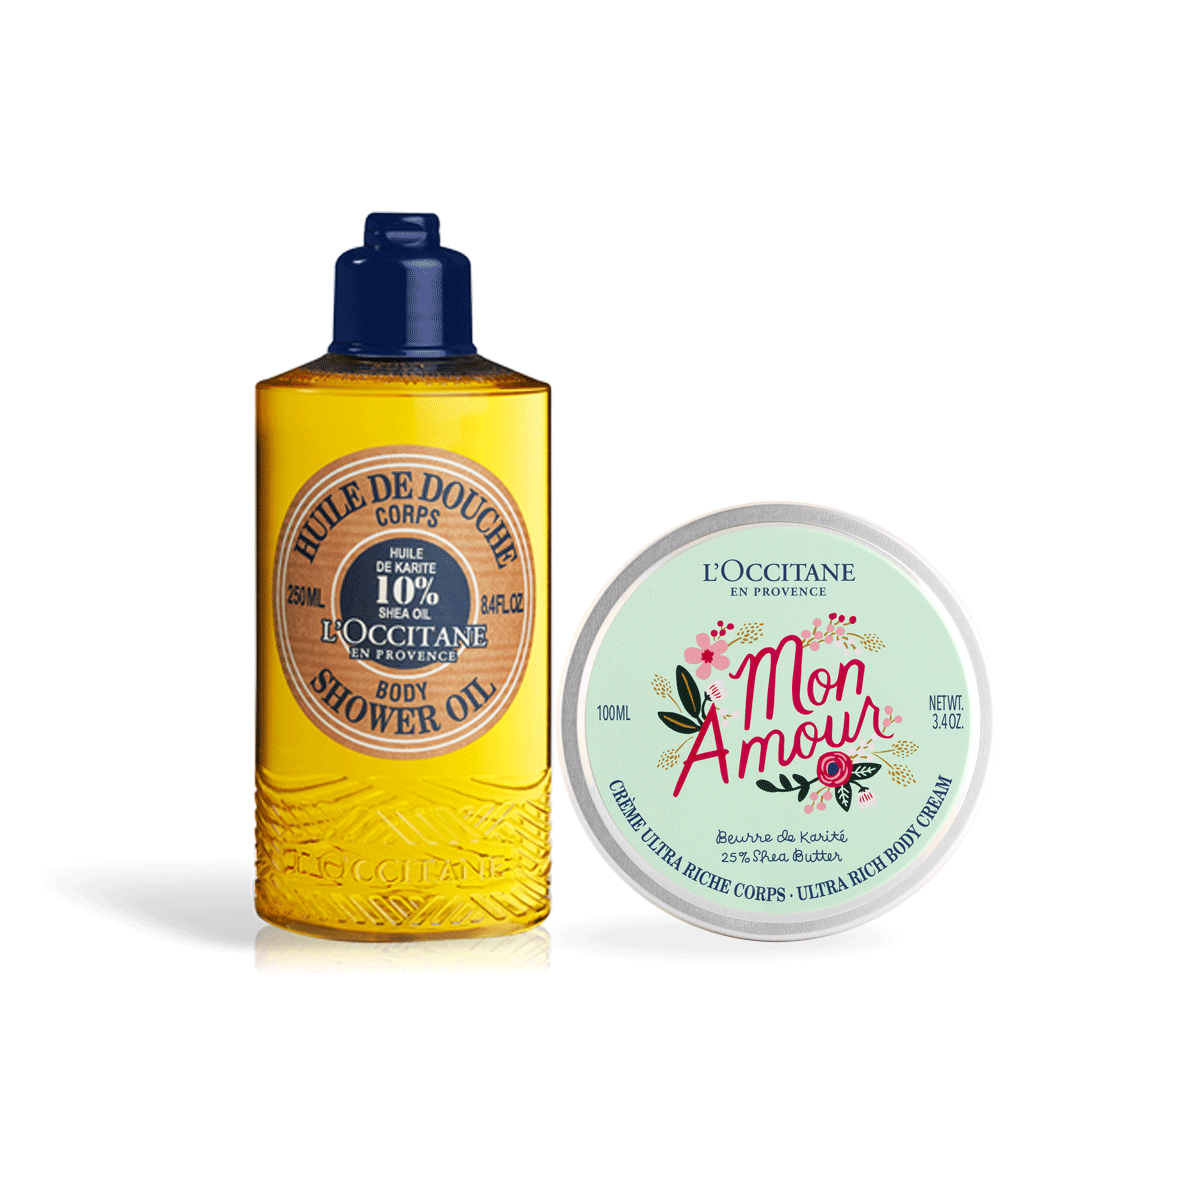 Kit Rifle Paper Co. Aceite Ducha